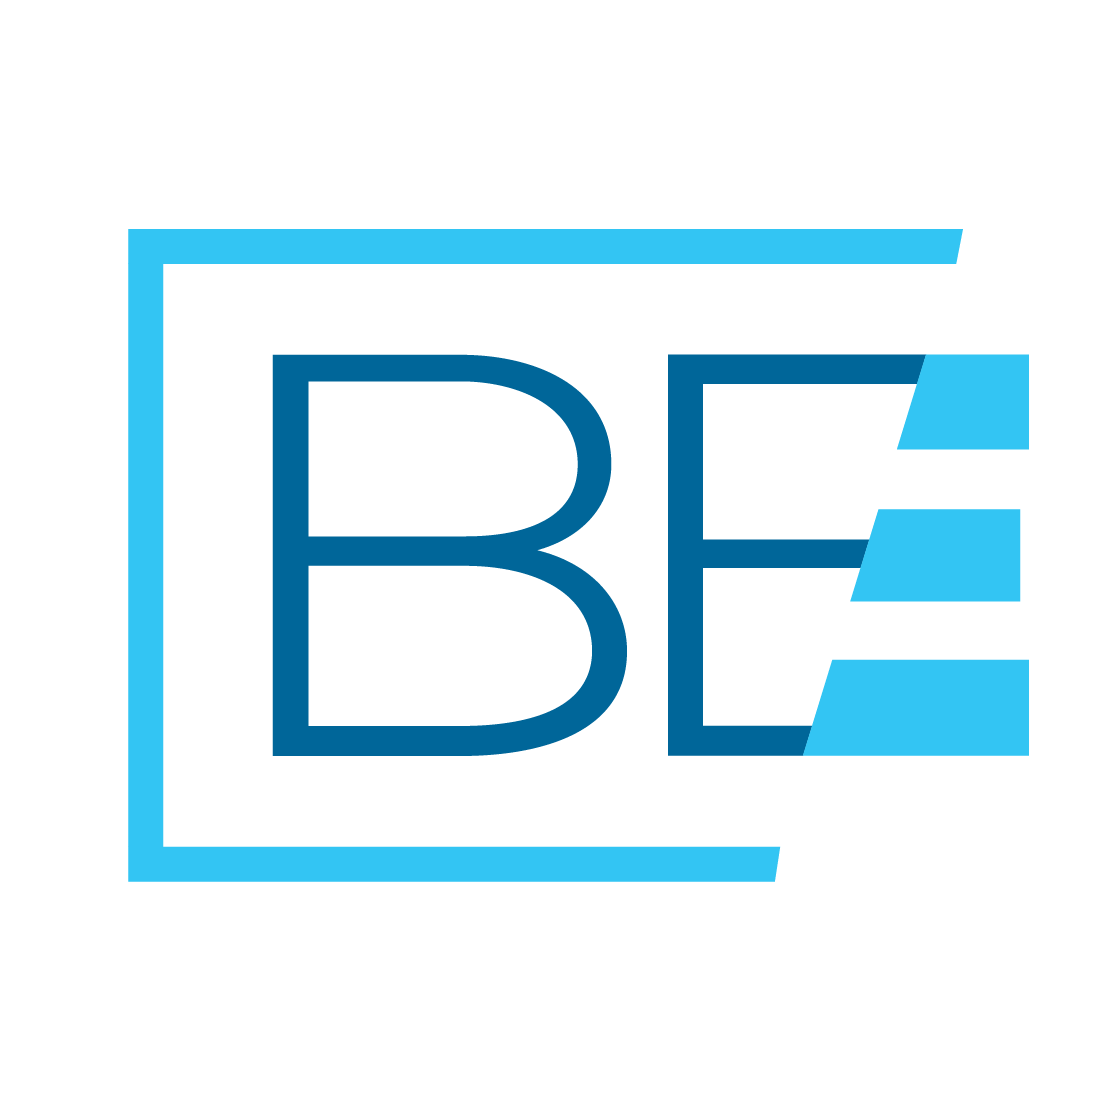 Company logo of Blue Edge Business Solutions